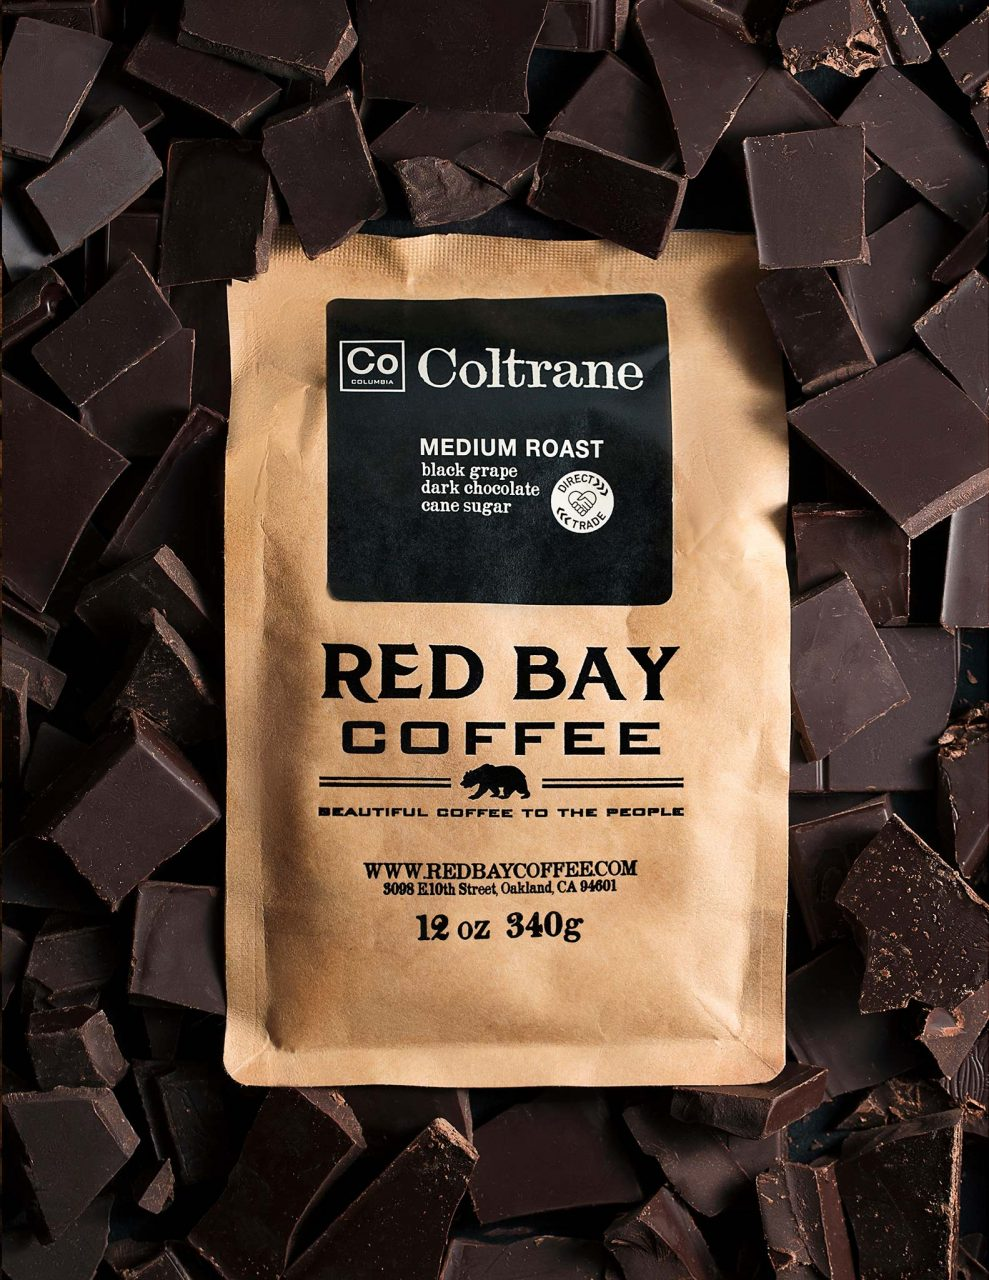 Red Bay Coffee Unique Tasting Notes